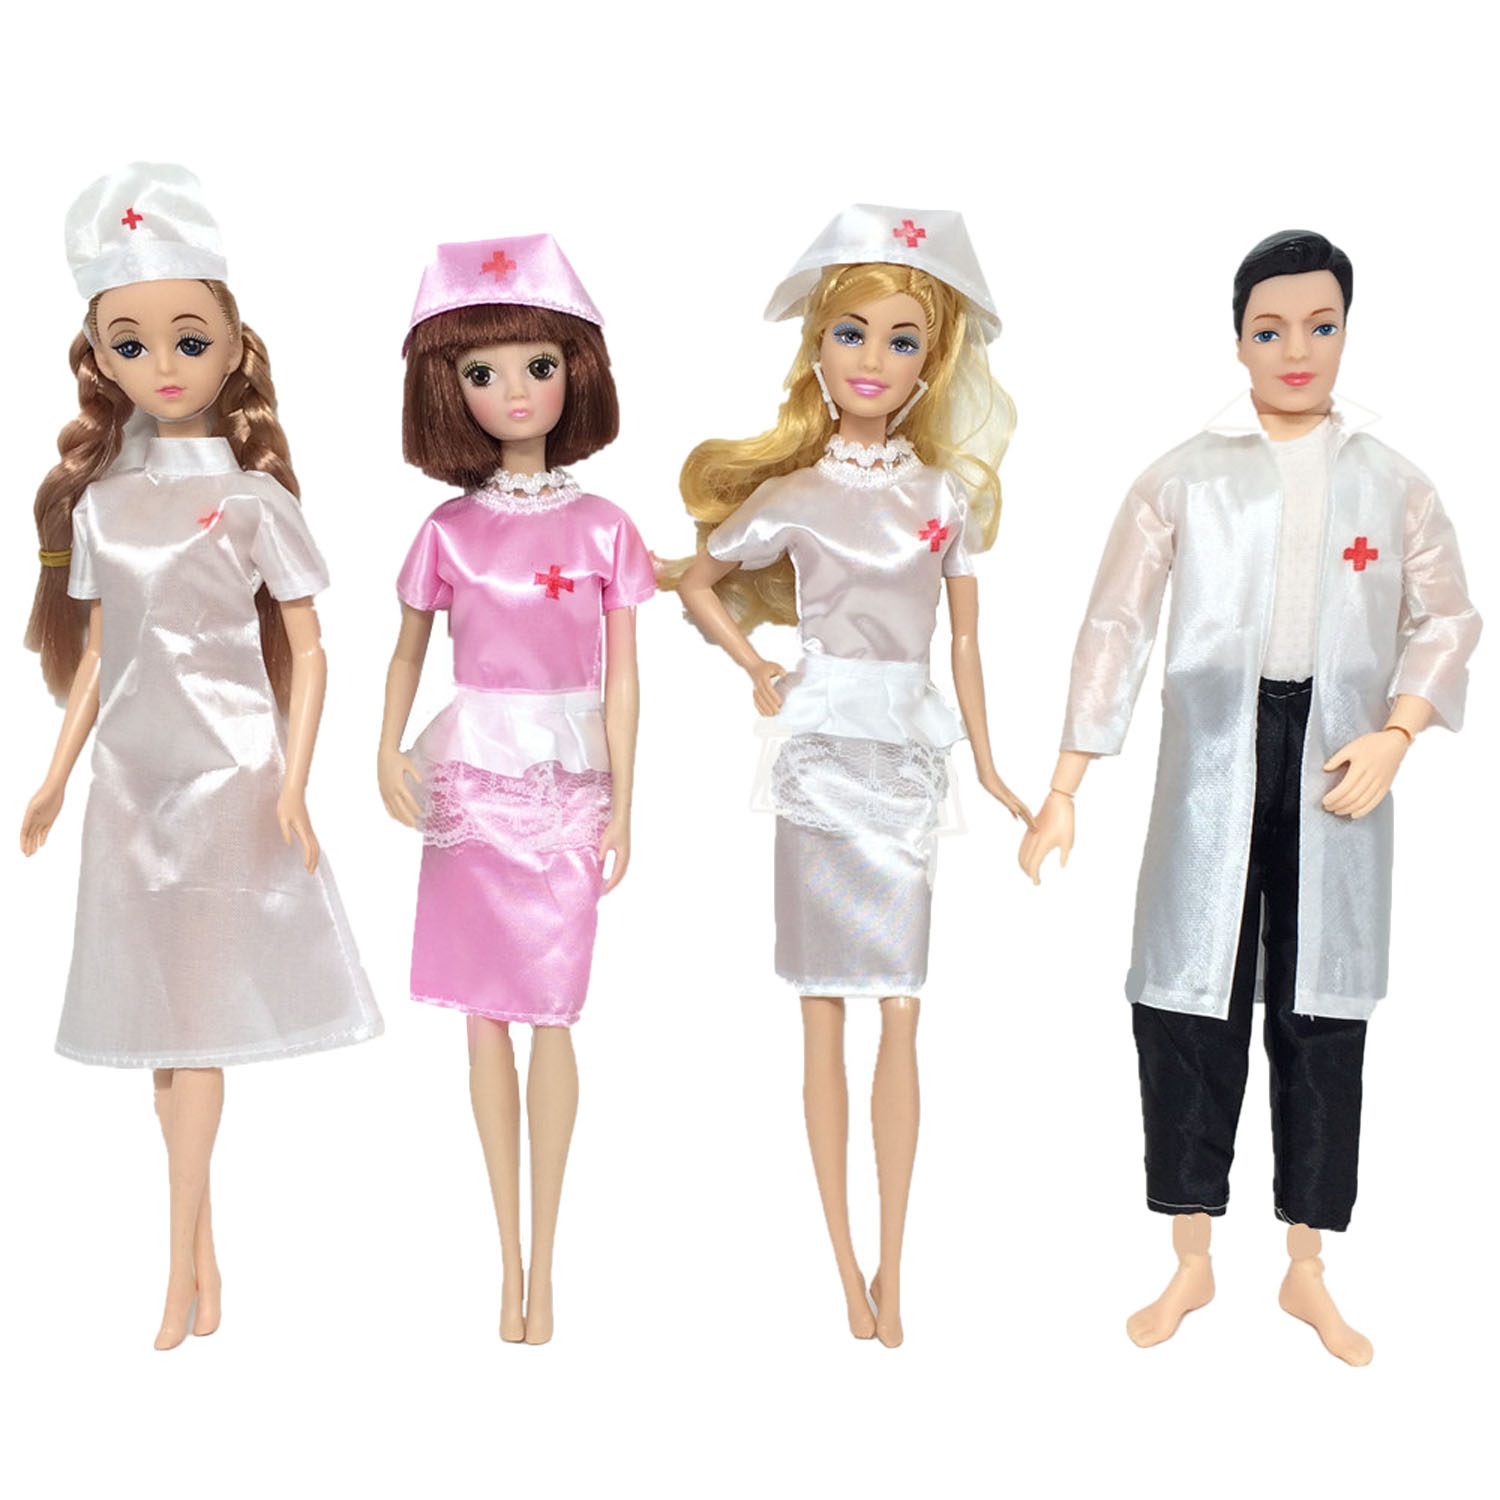 4 Sets Mini Girl Doll Nurse Dresses Skirts Ken Doll Doctor Clothes Medicine Career Apparel Outfits Accessories For Barbie Toys